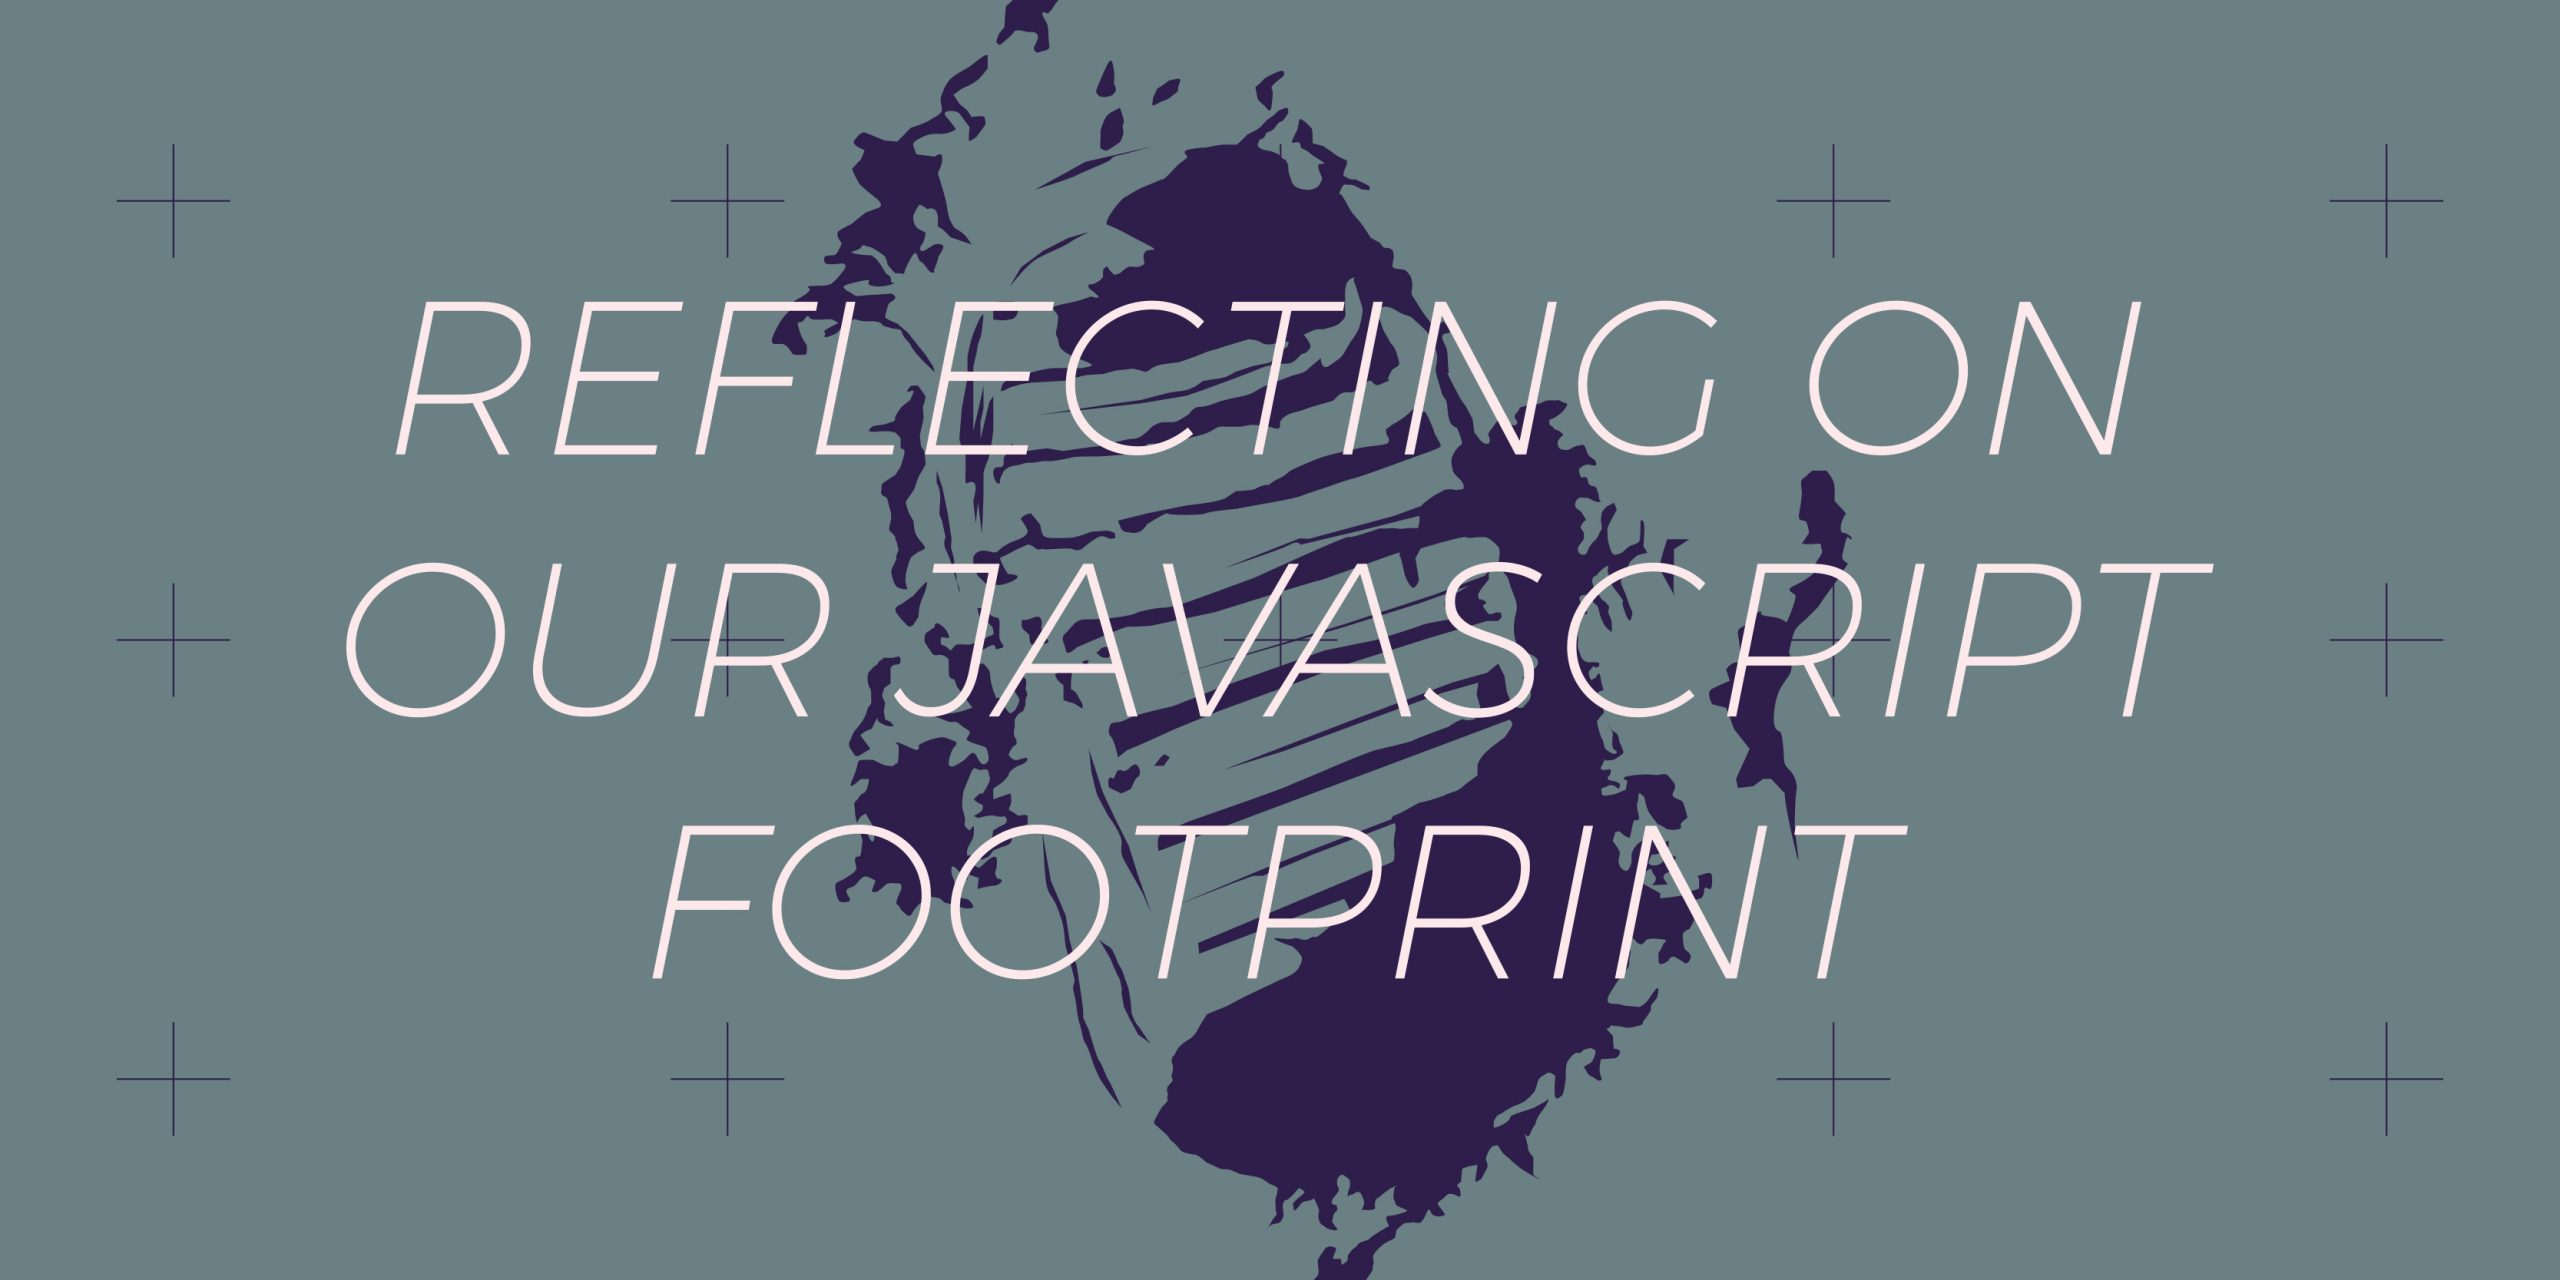 Reflecting on our JavaScript footprint